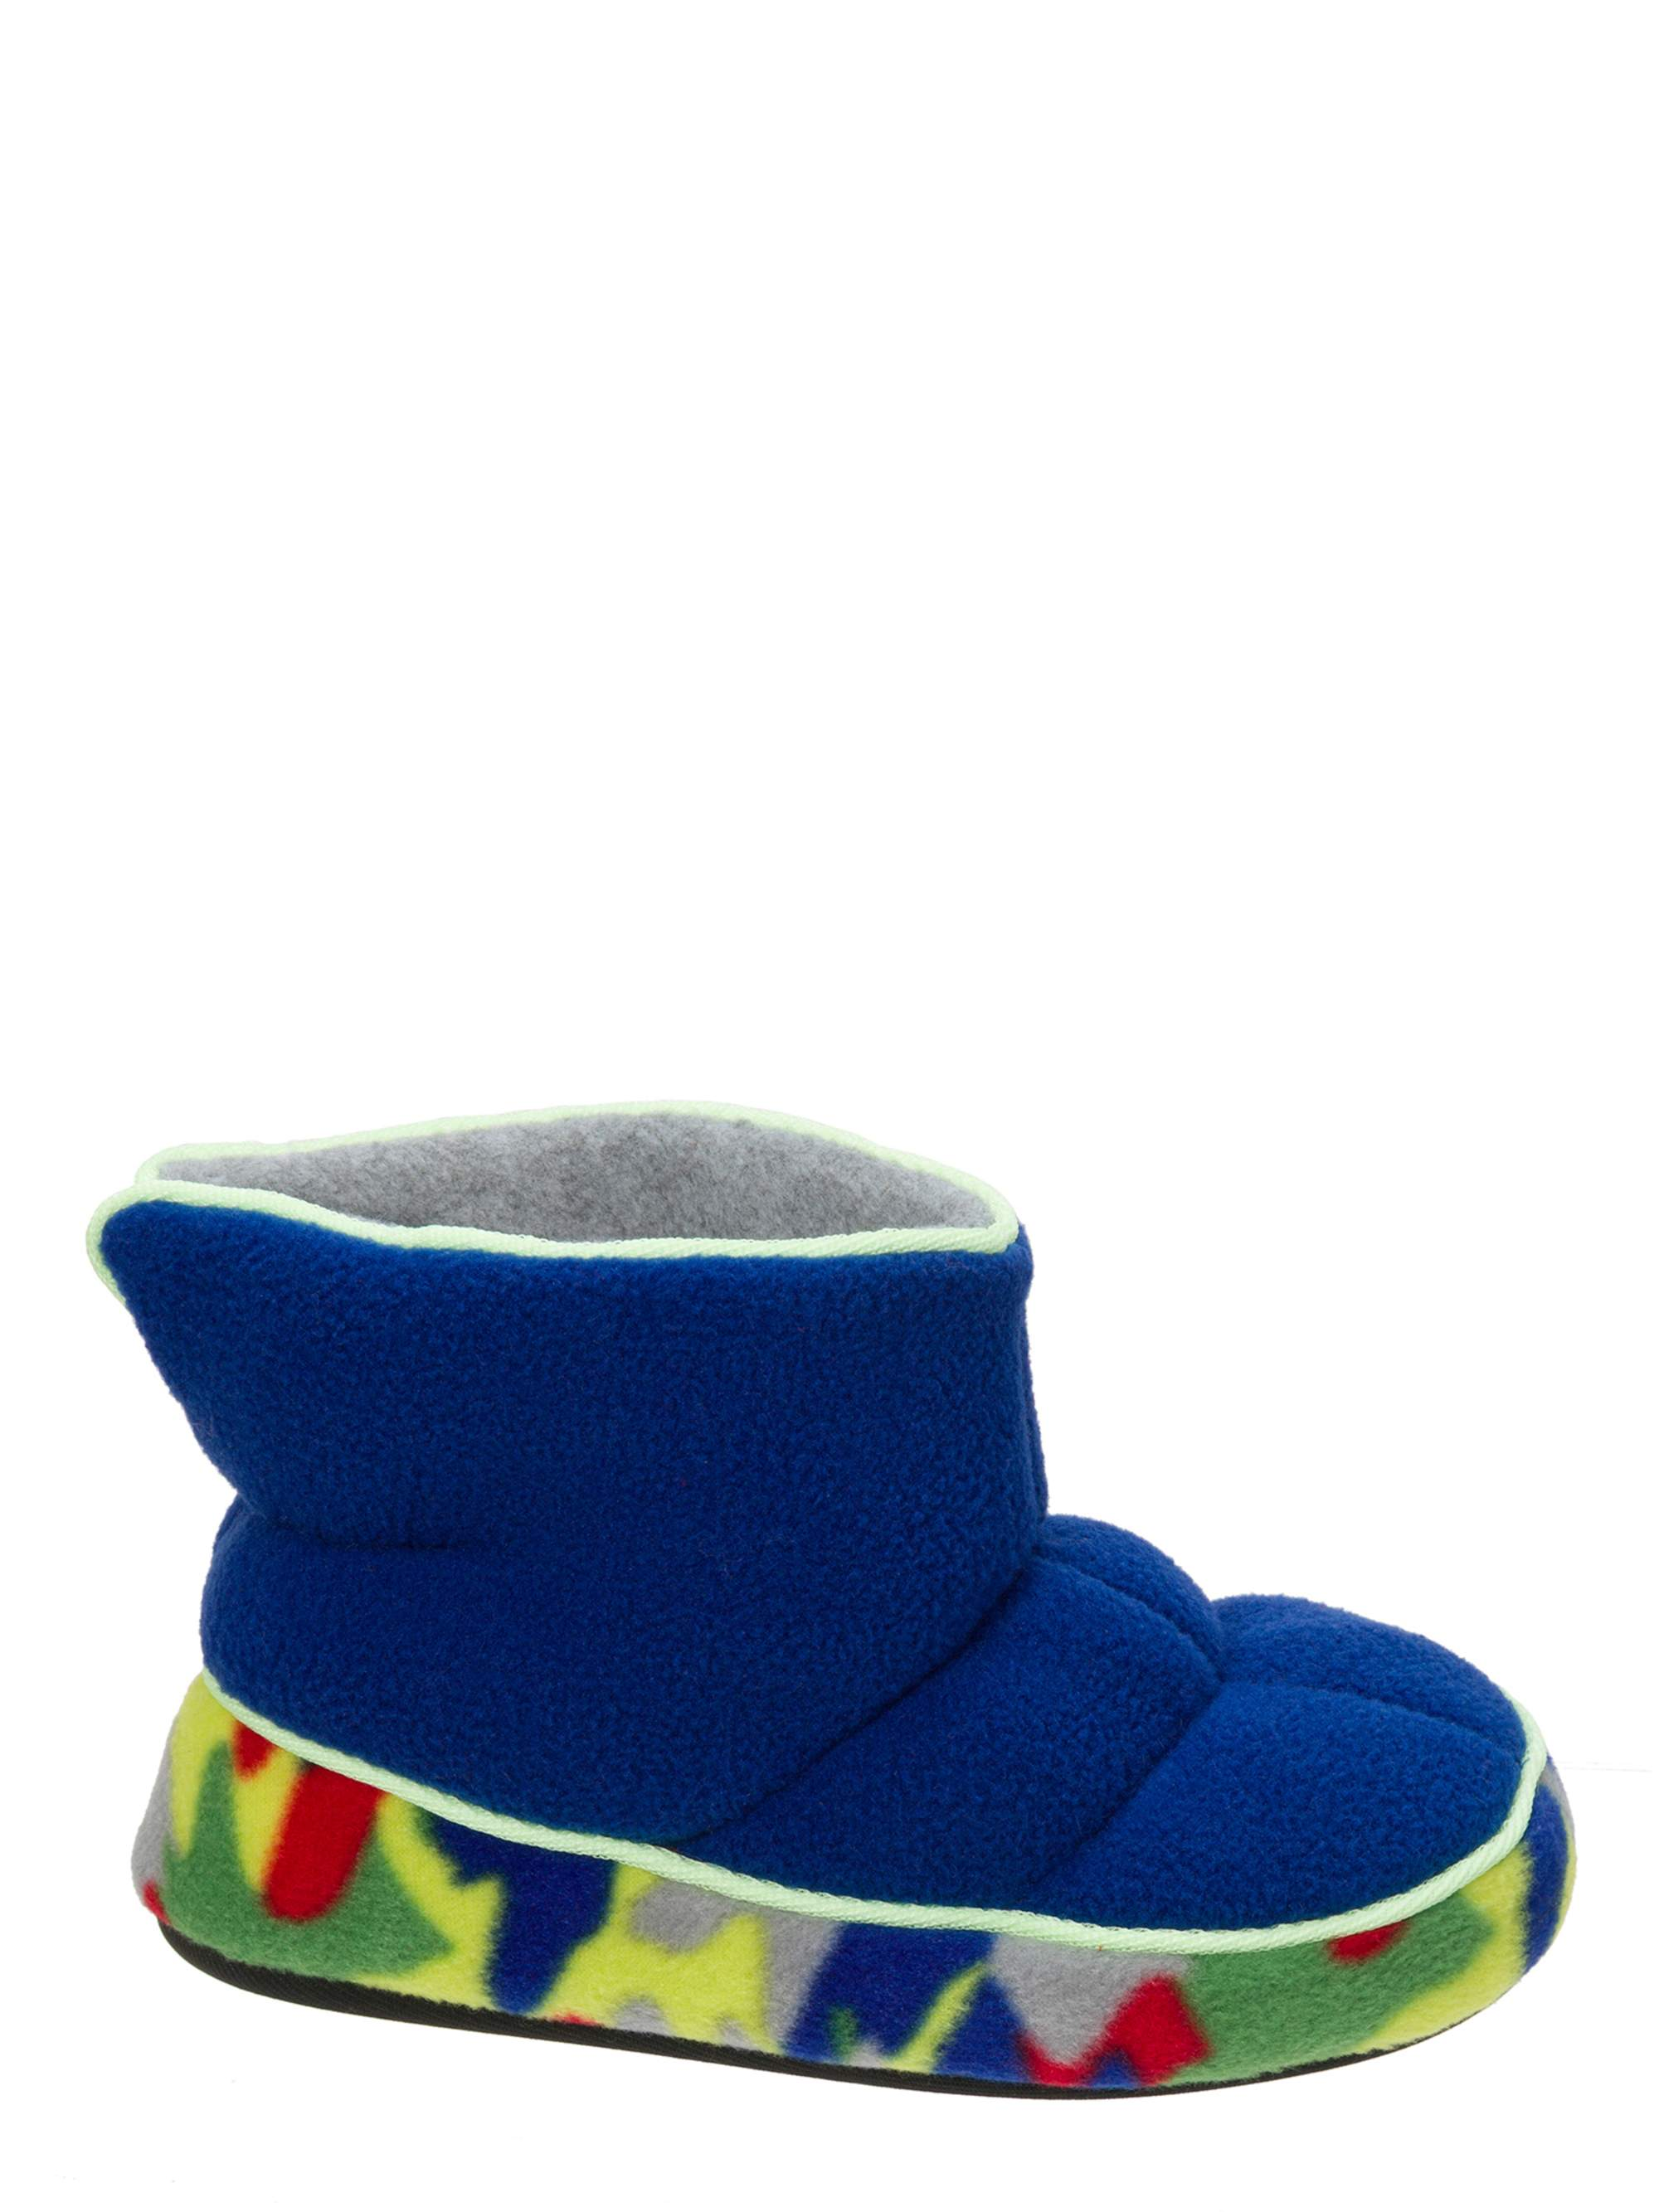 DF by Dearfoams Boys' Quilted Fleece Bootie with Glow Slippers